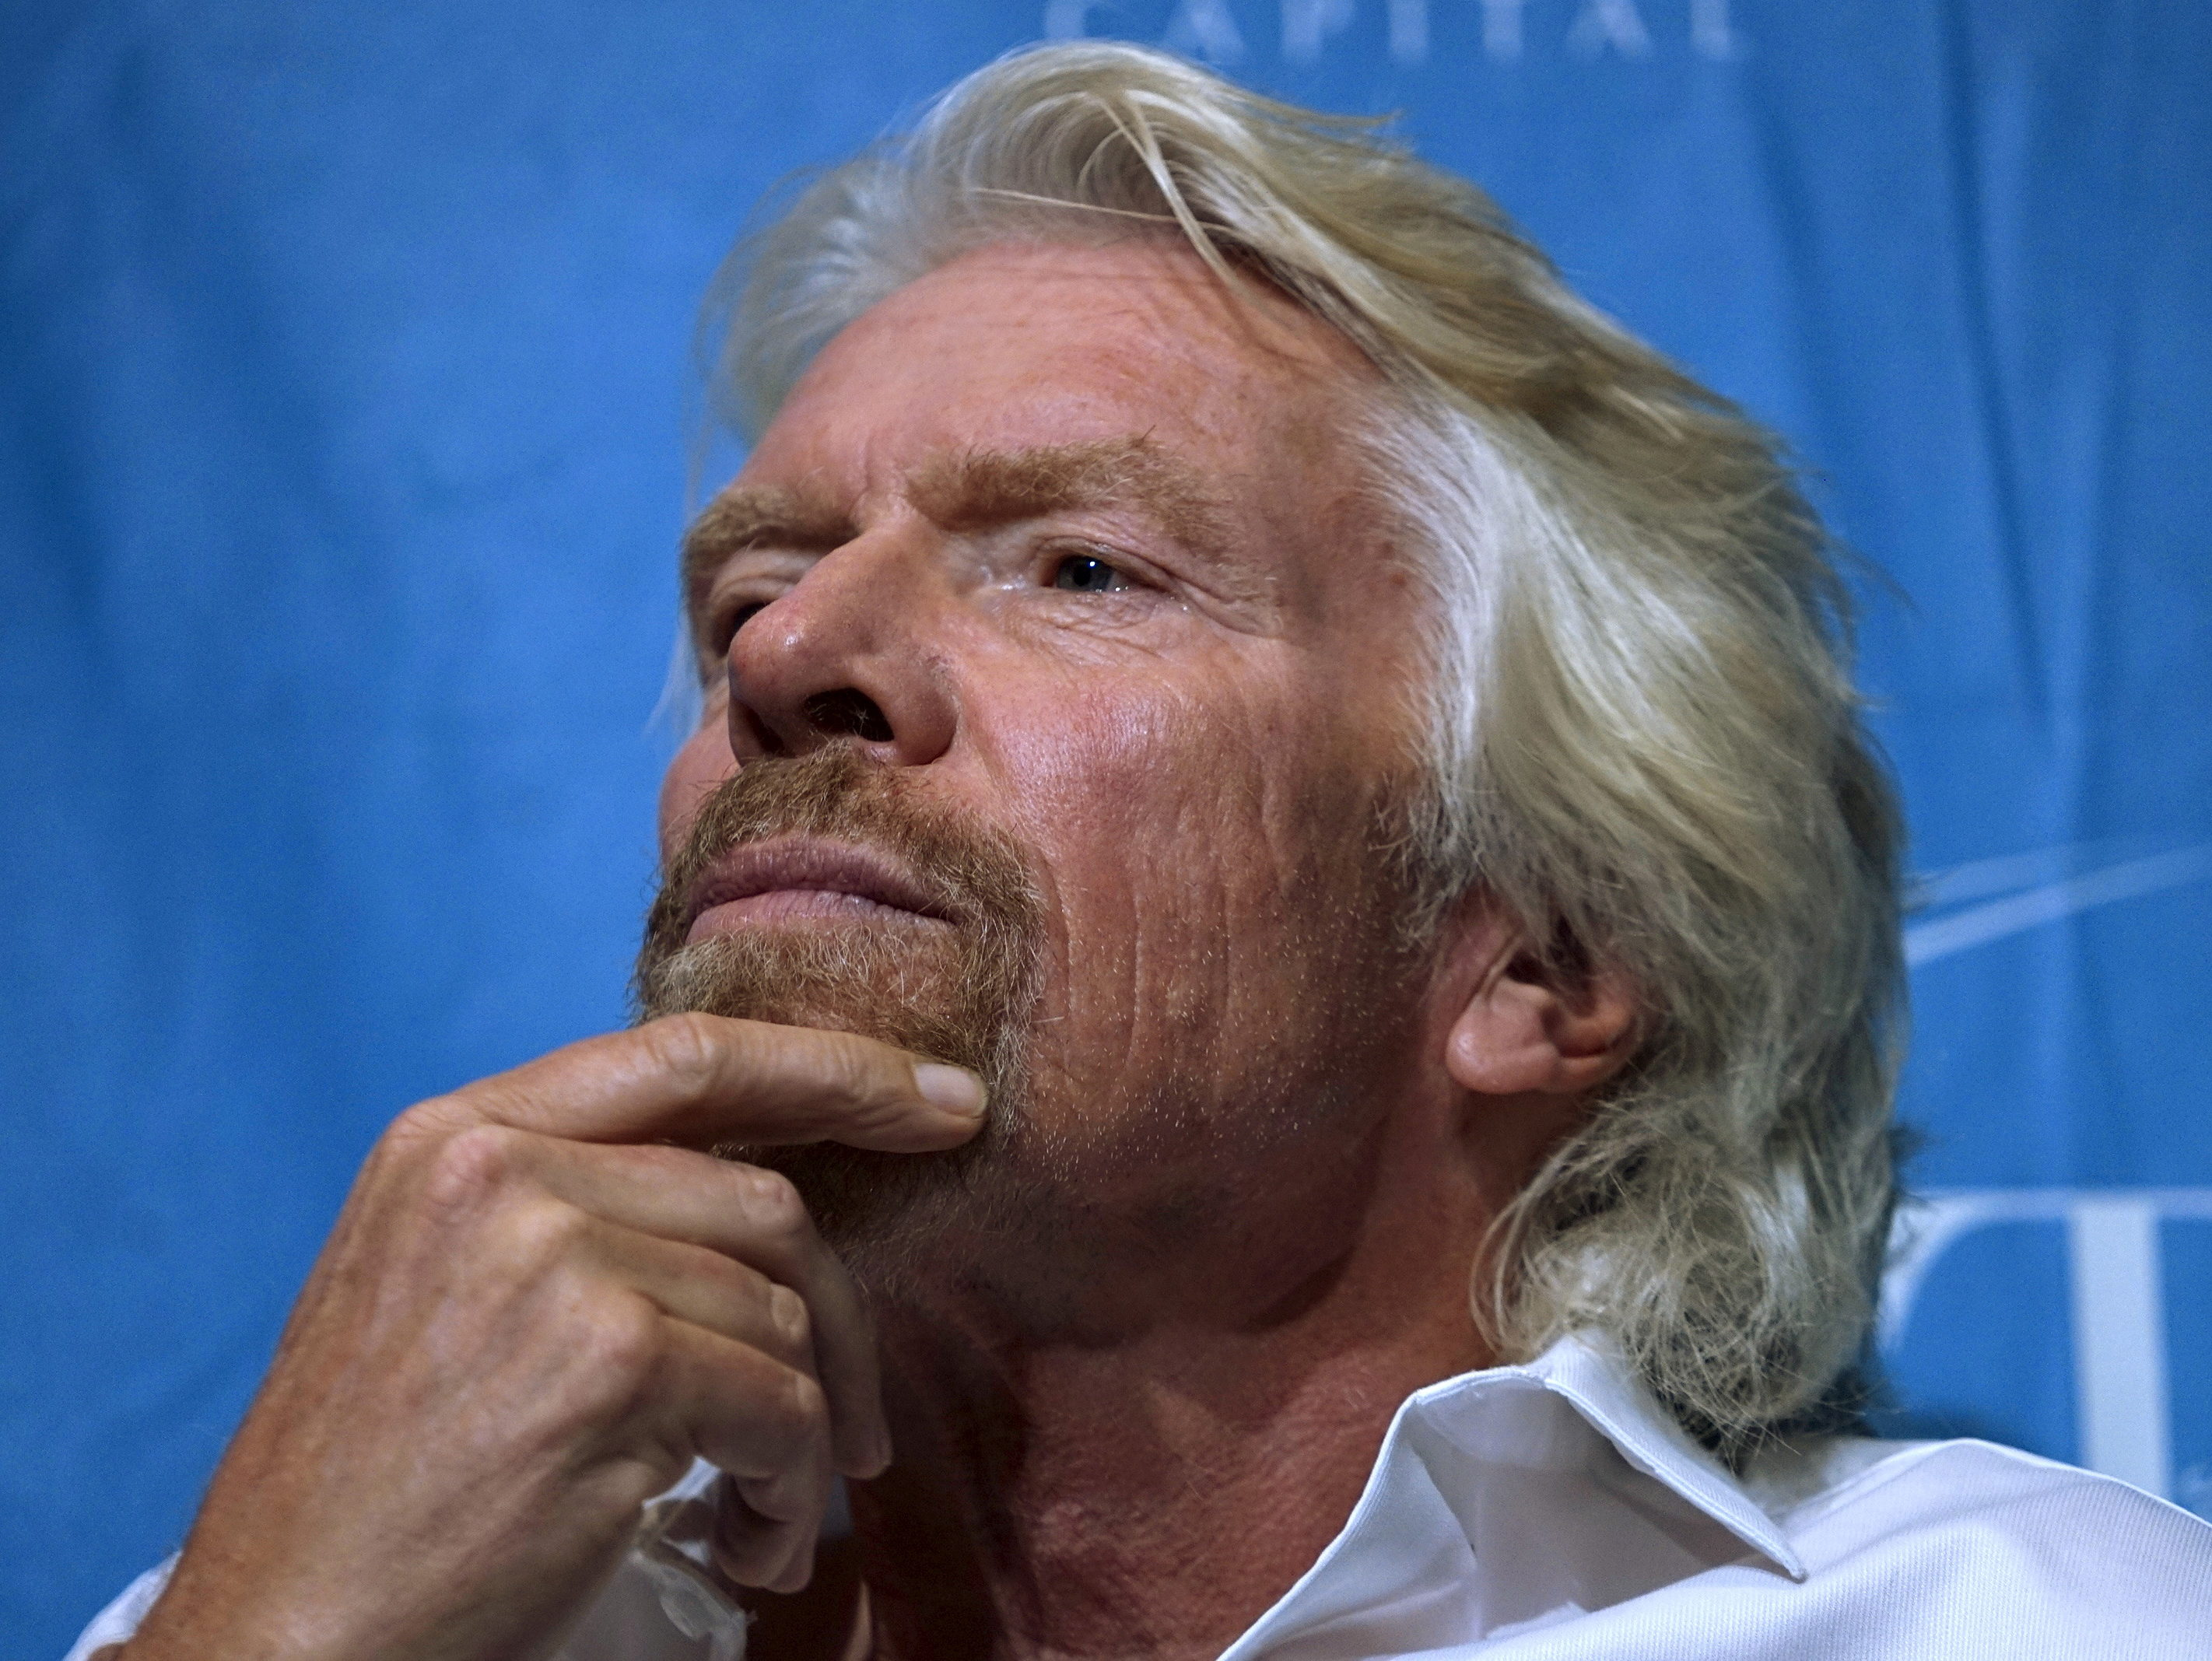 Branson orders Virgin Trains to lift ban on Daily Mail